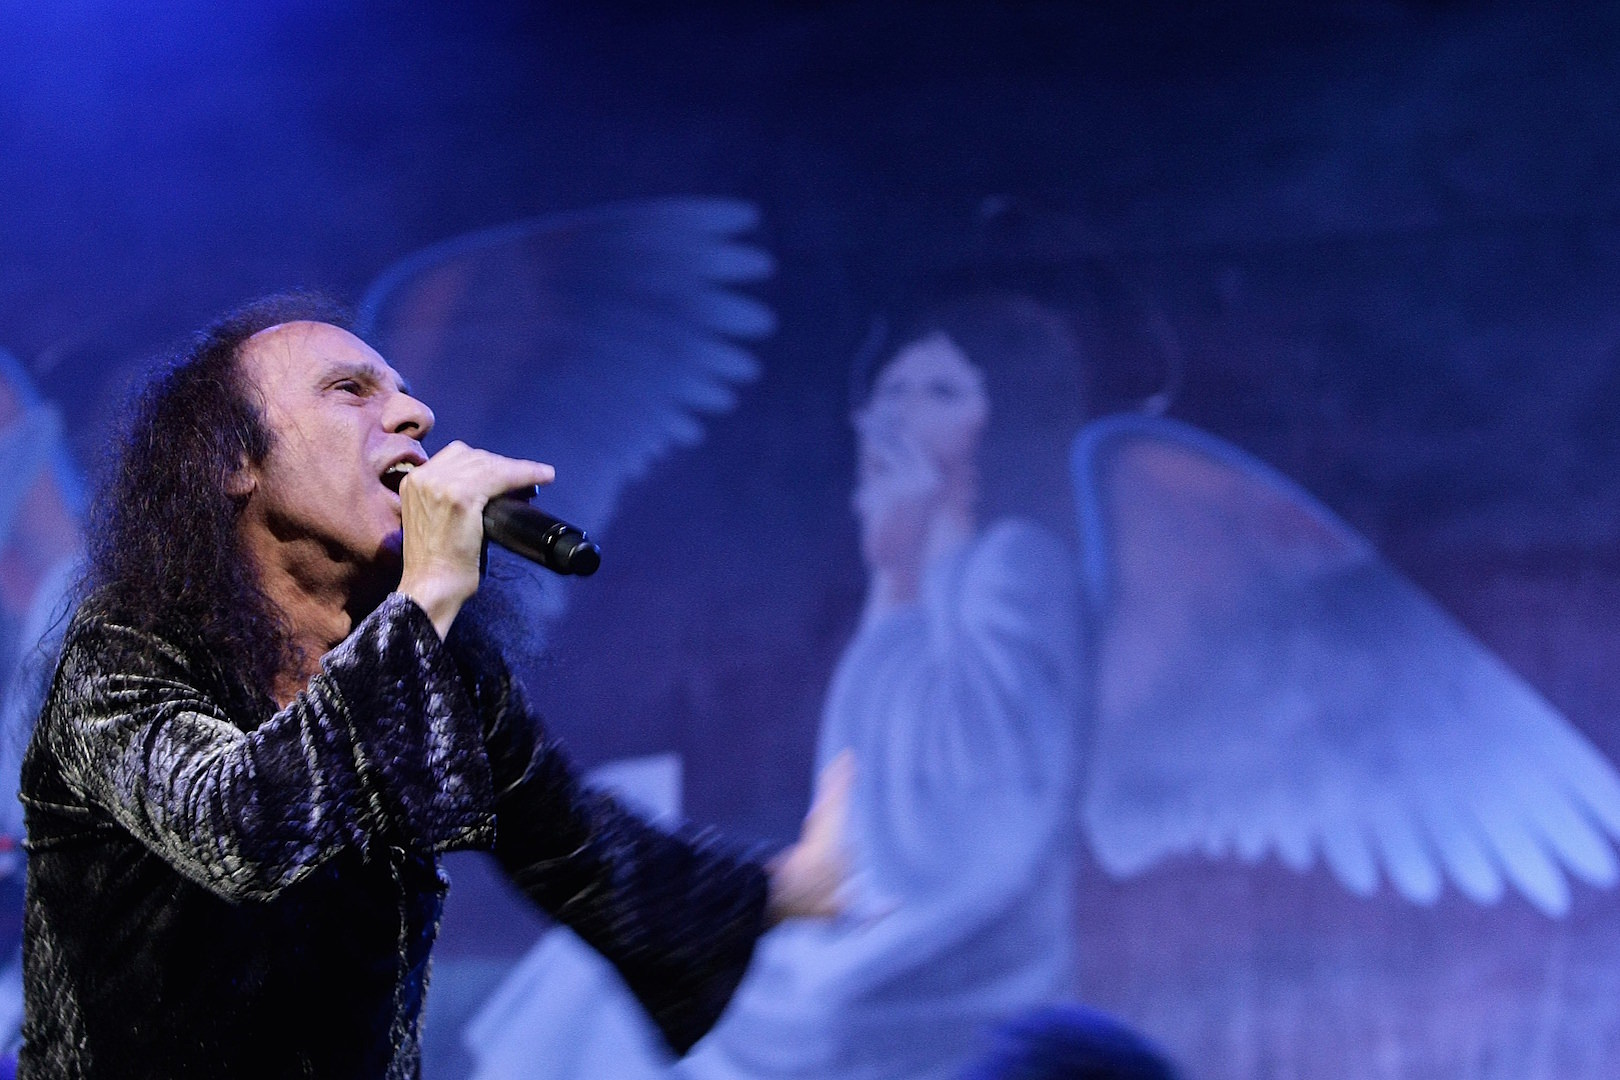 Major Ronnie James Dio Auction Set for September 2018